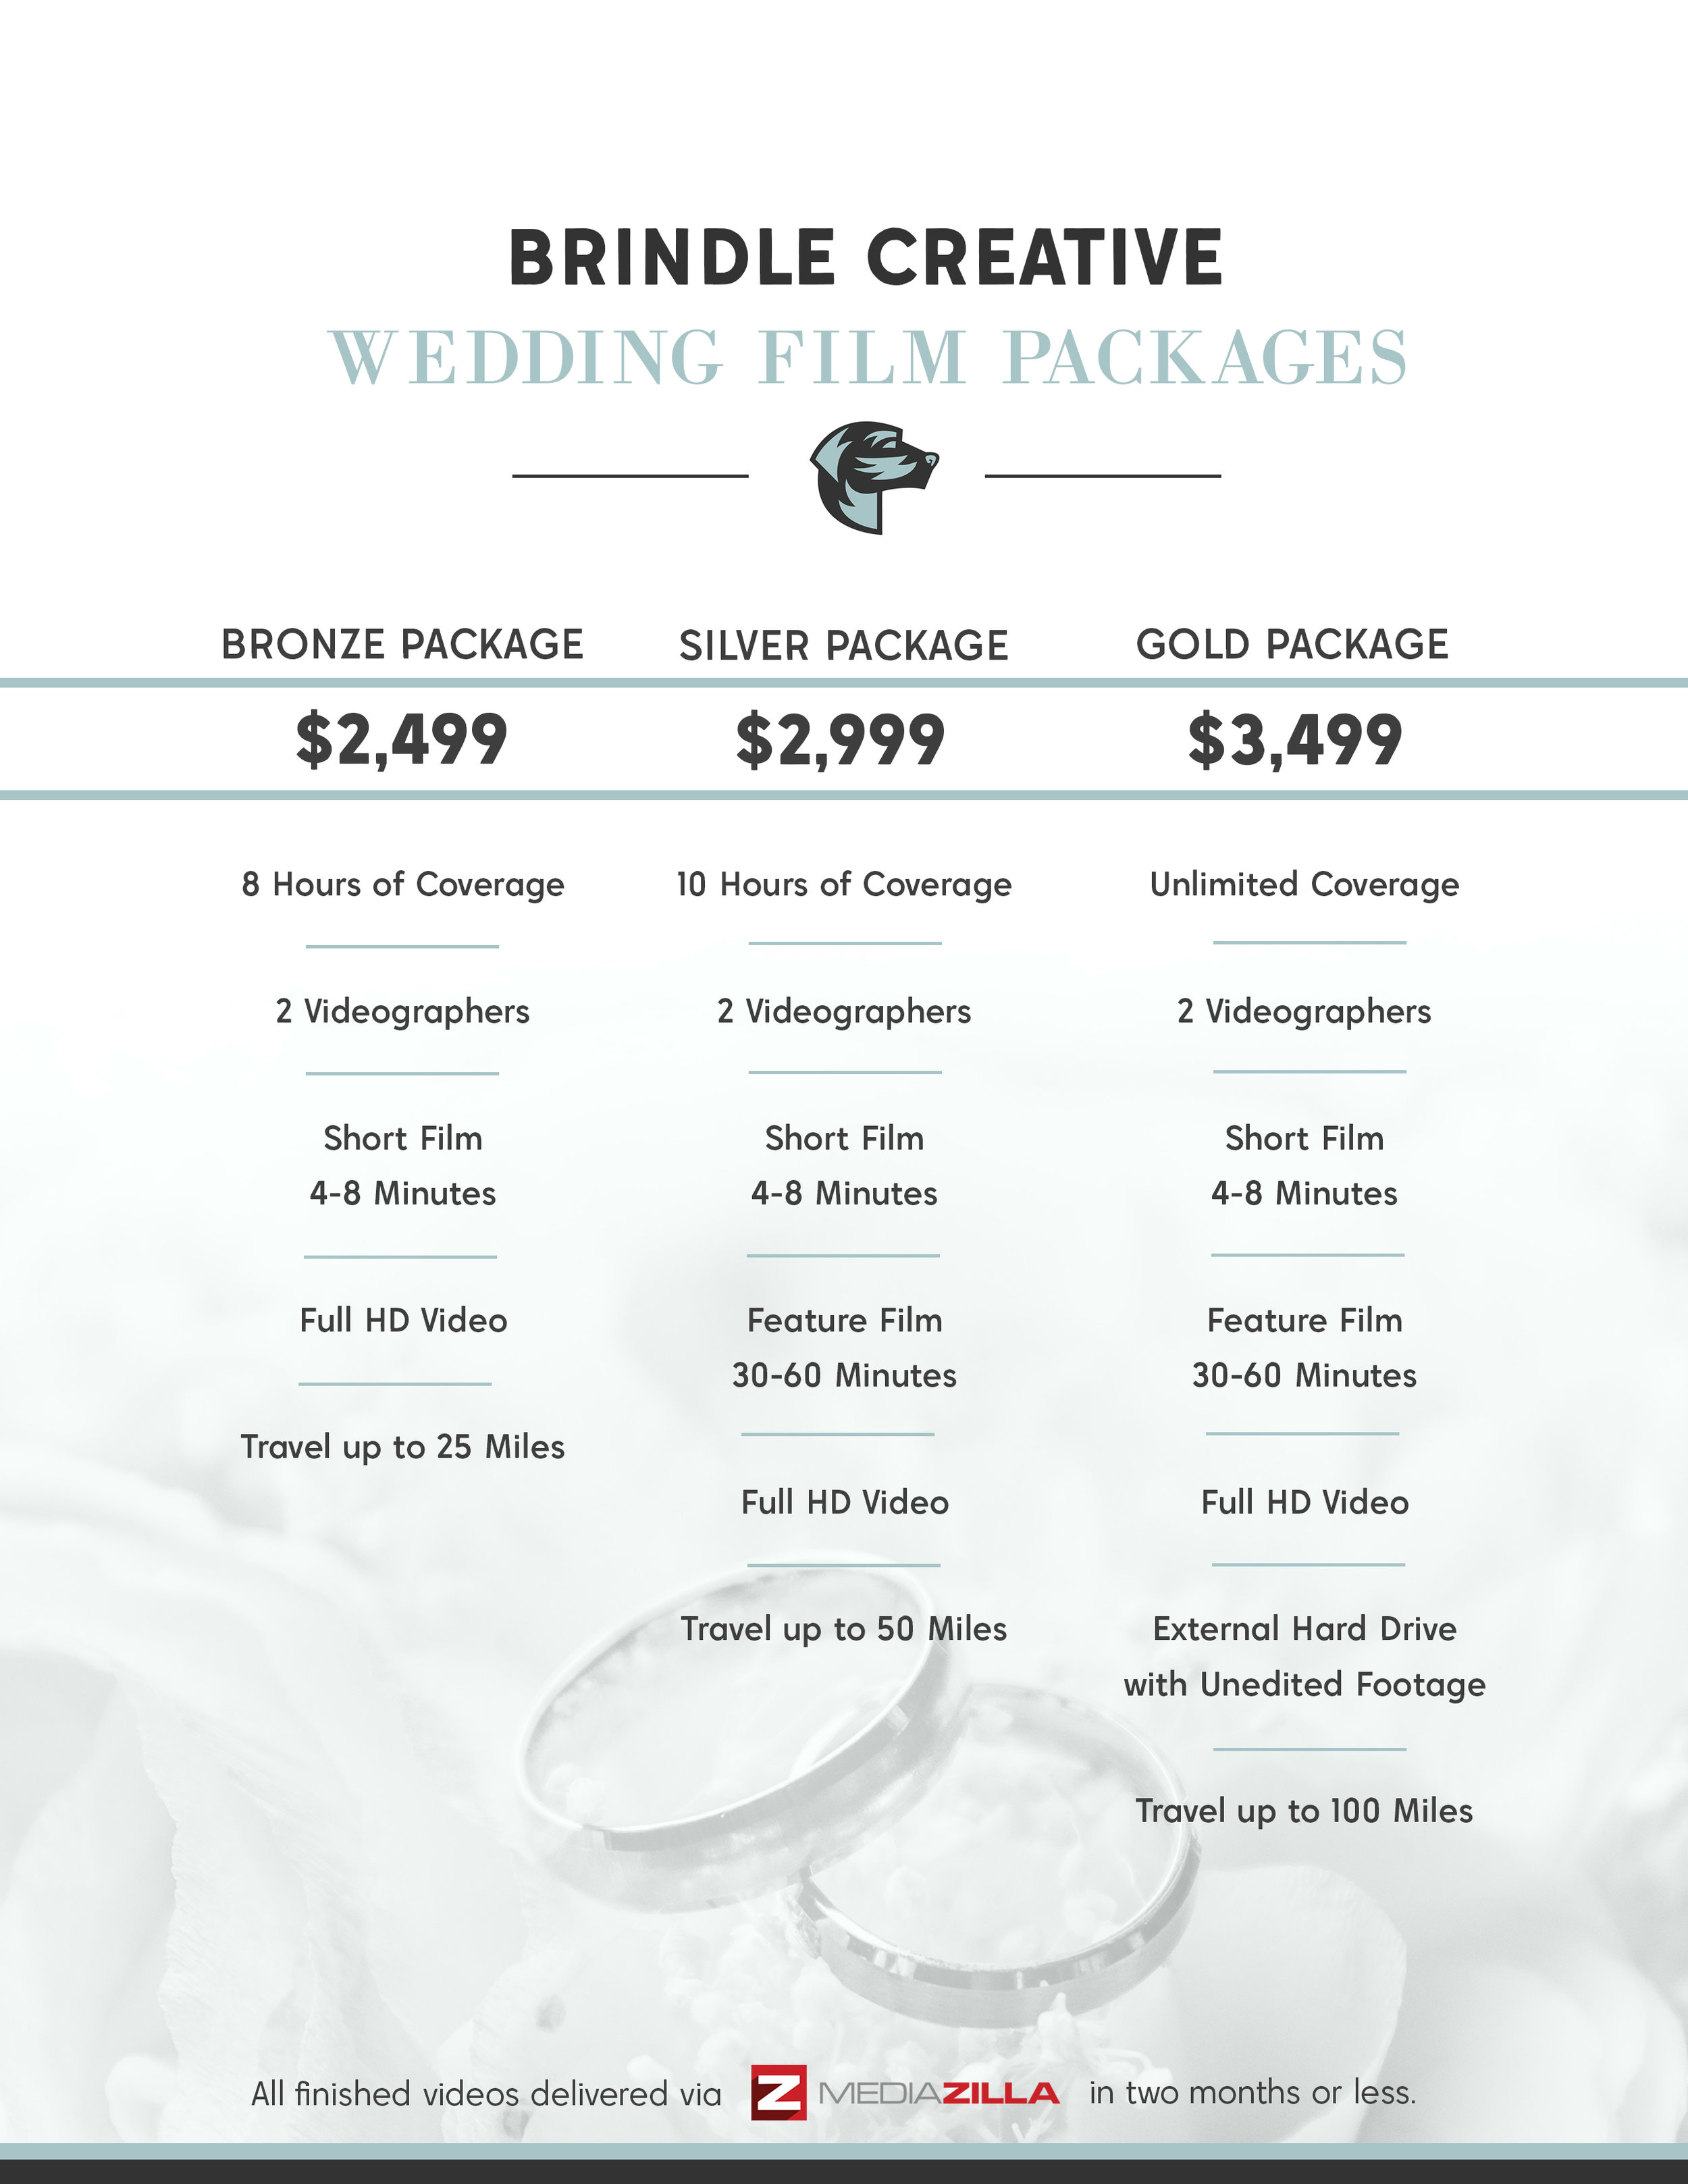 BrindleWeddingPackages_2018.jpg